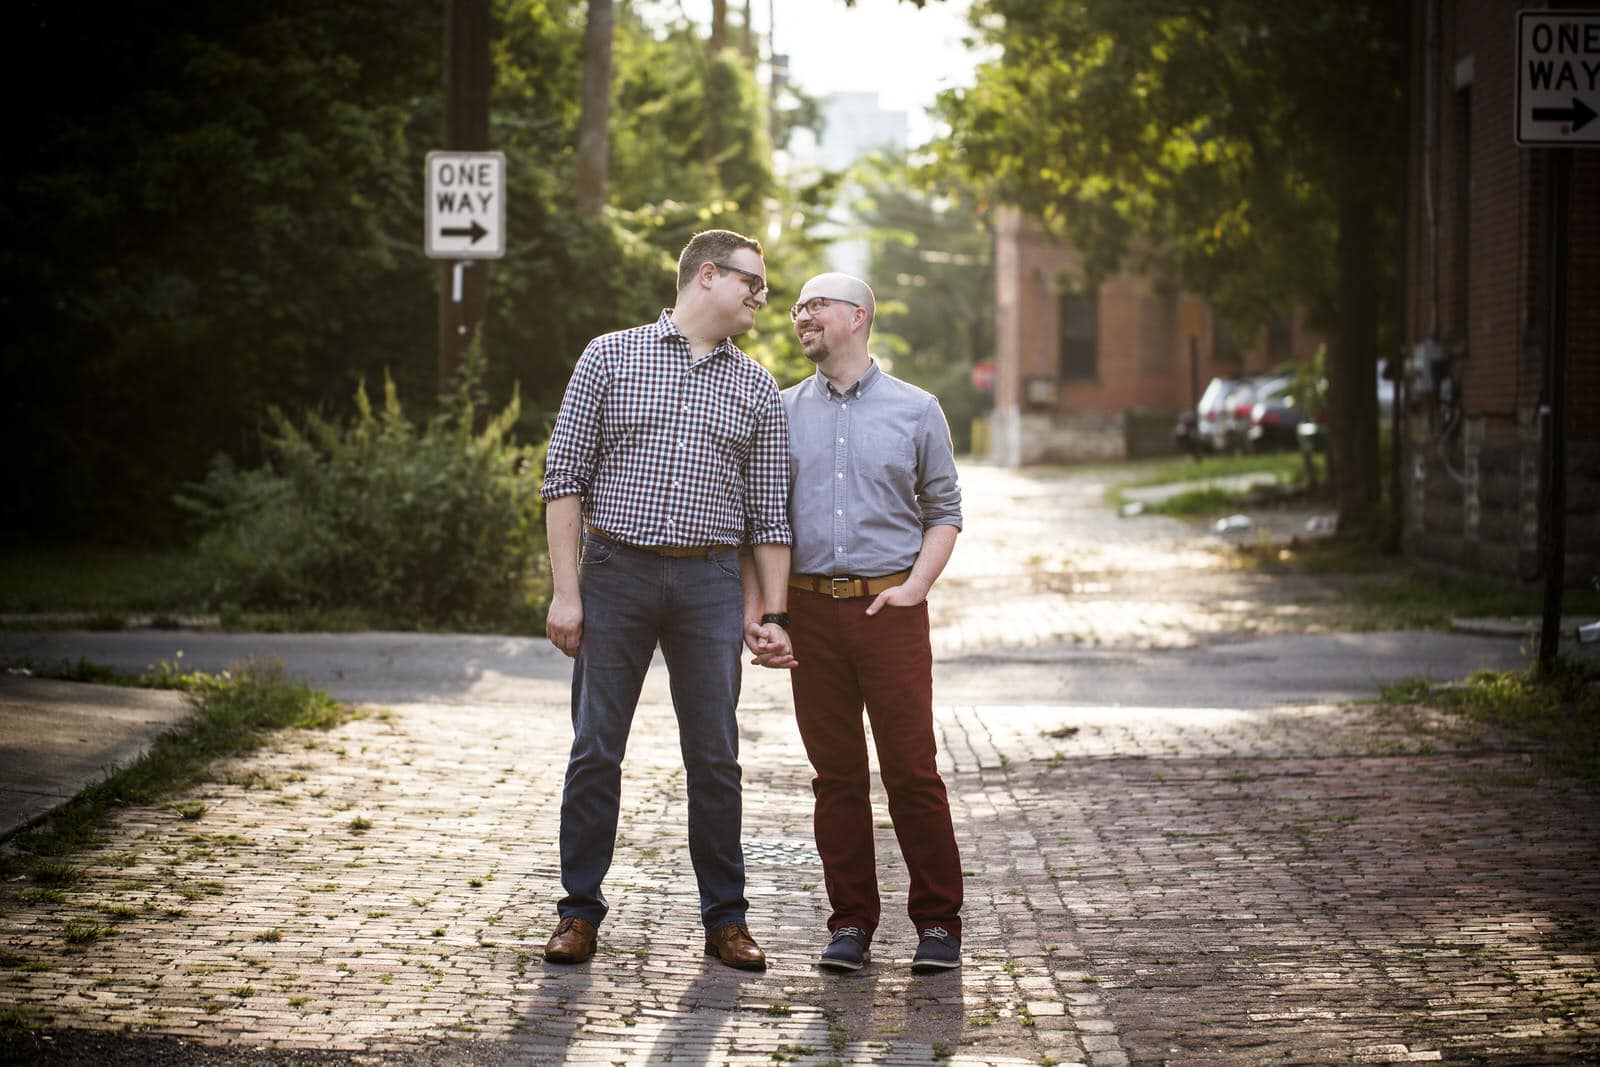 Brian-Kris-Olde-Town-East-same-sex-engagement-photography-by-Amy-Ann-00016